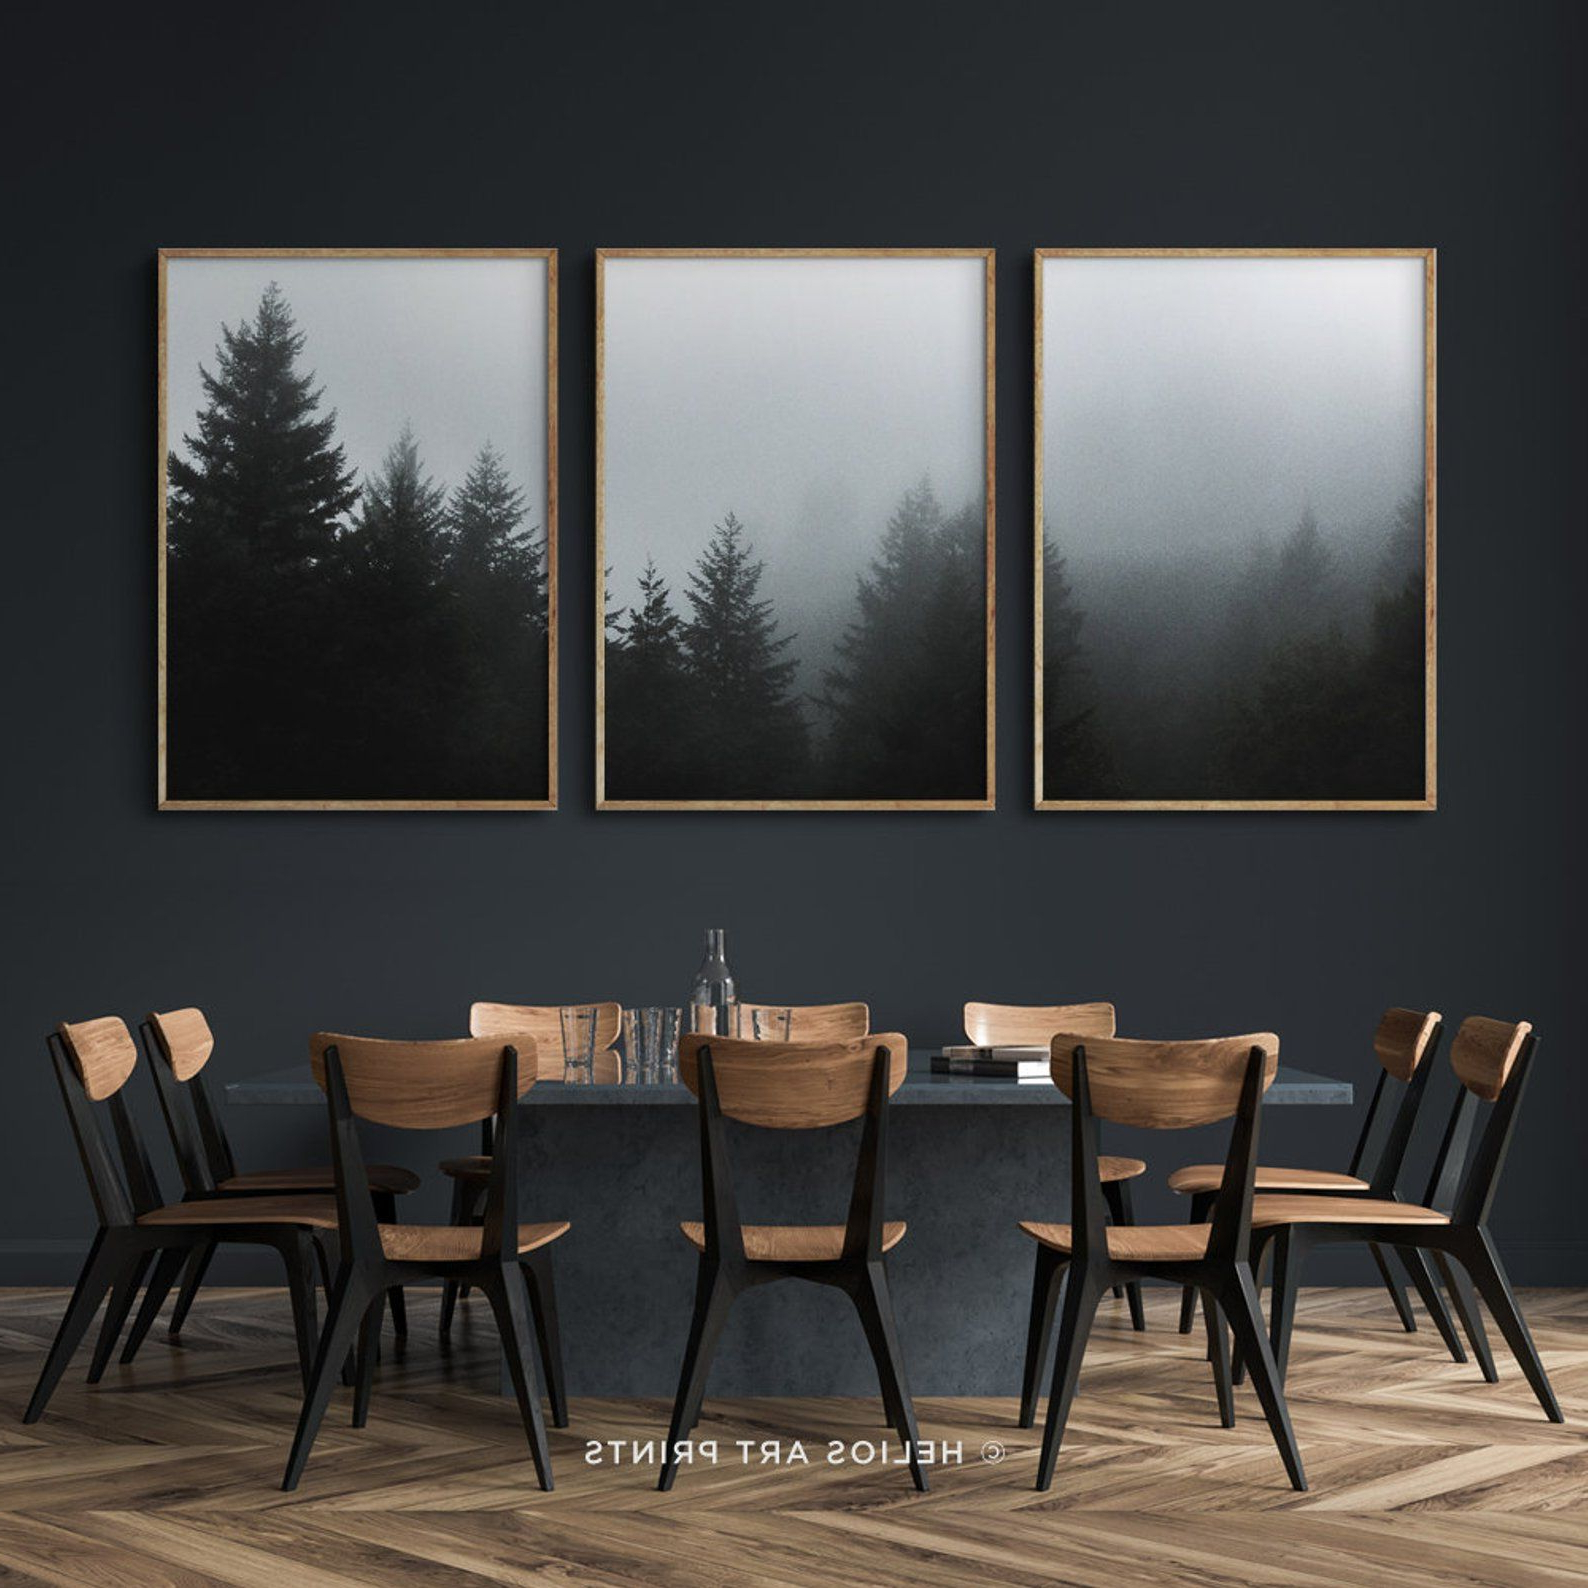 Wallflower 3 Piece Dining Sets Regarding Most Current Set Of Three Deep Green Misty Forest Art Prints, Set Of 3 Misty (View 19 of 25)